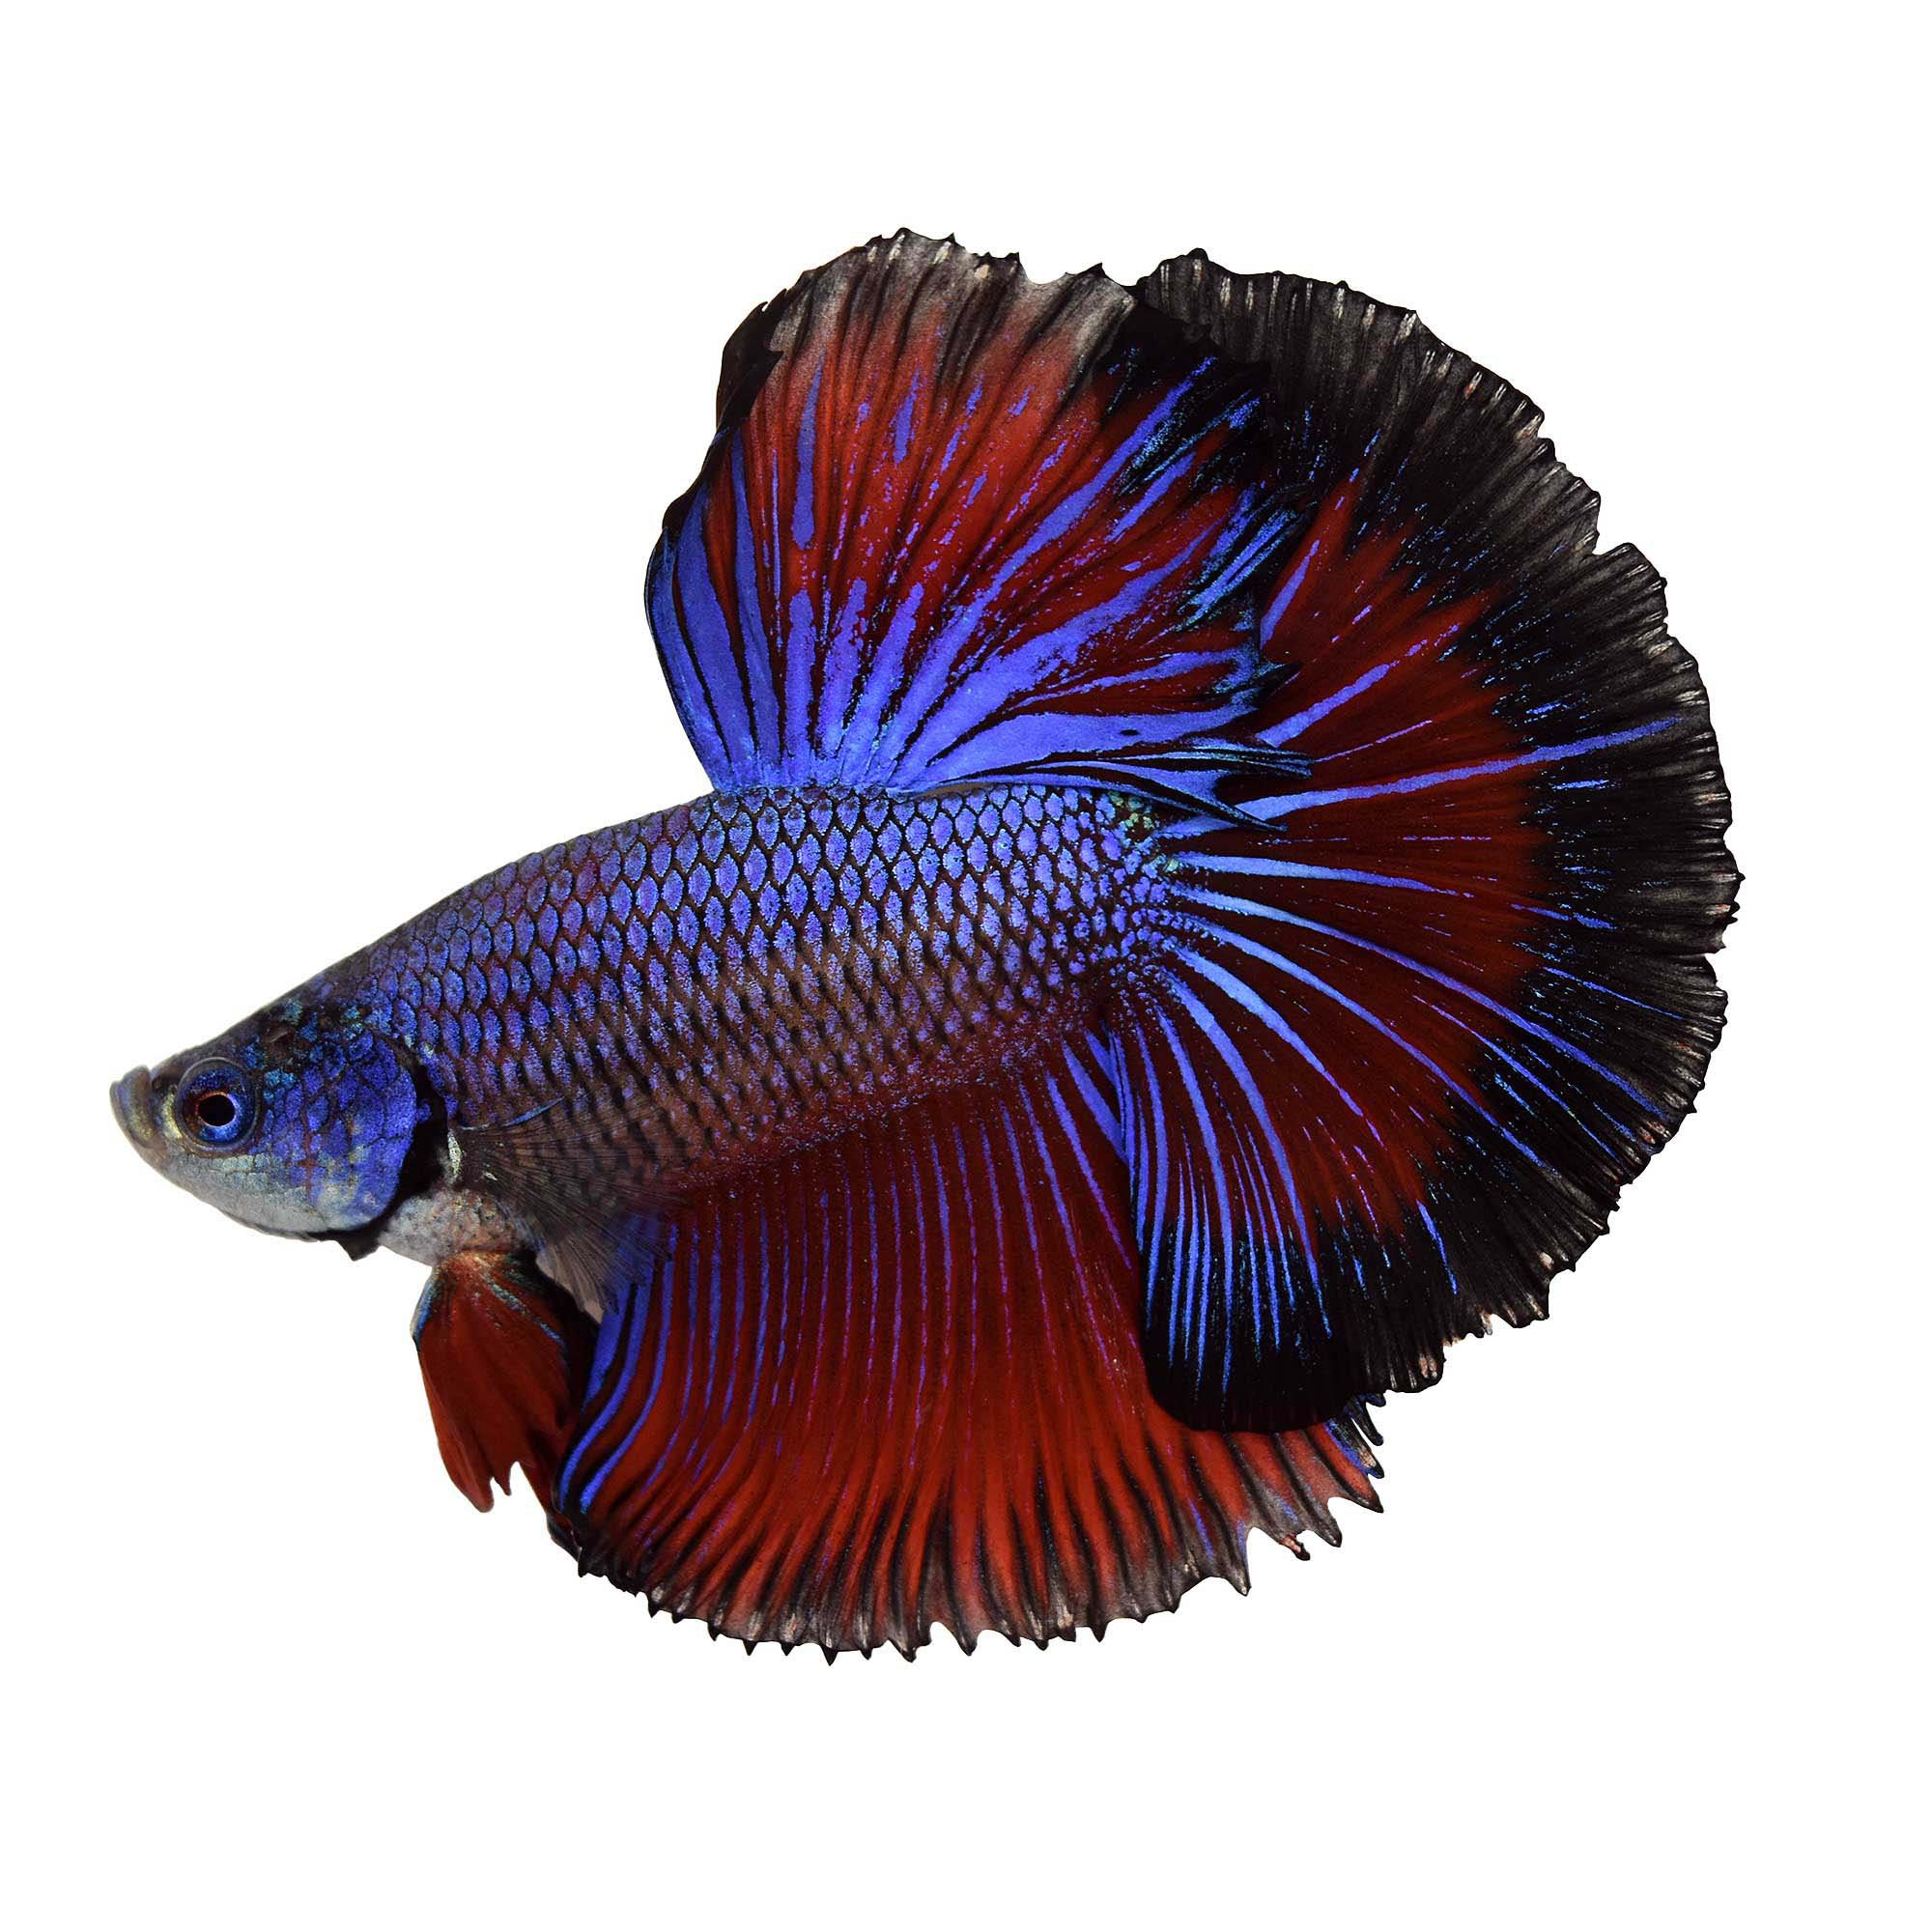 Male Halfmoon Betta Fish | Siamese Fighting Fish - Extra ...